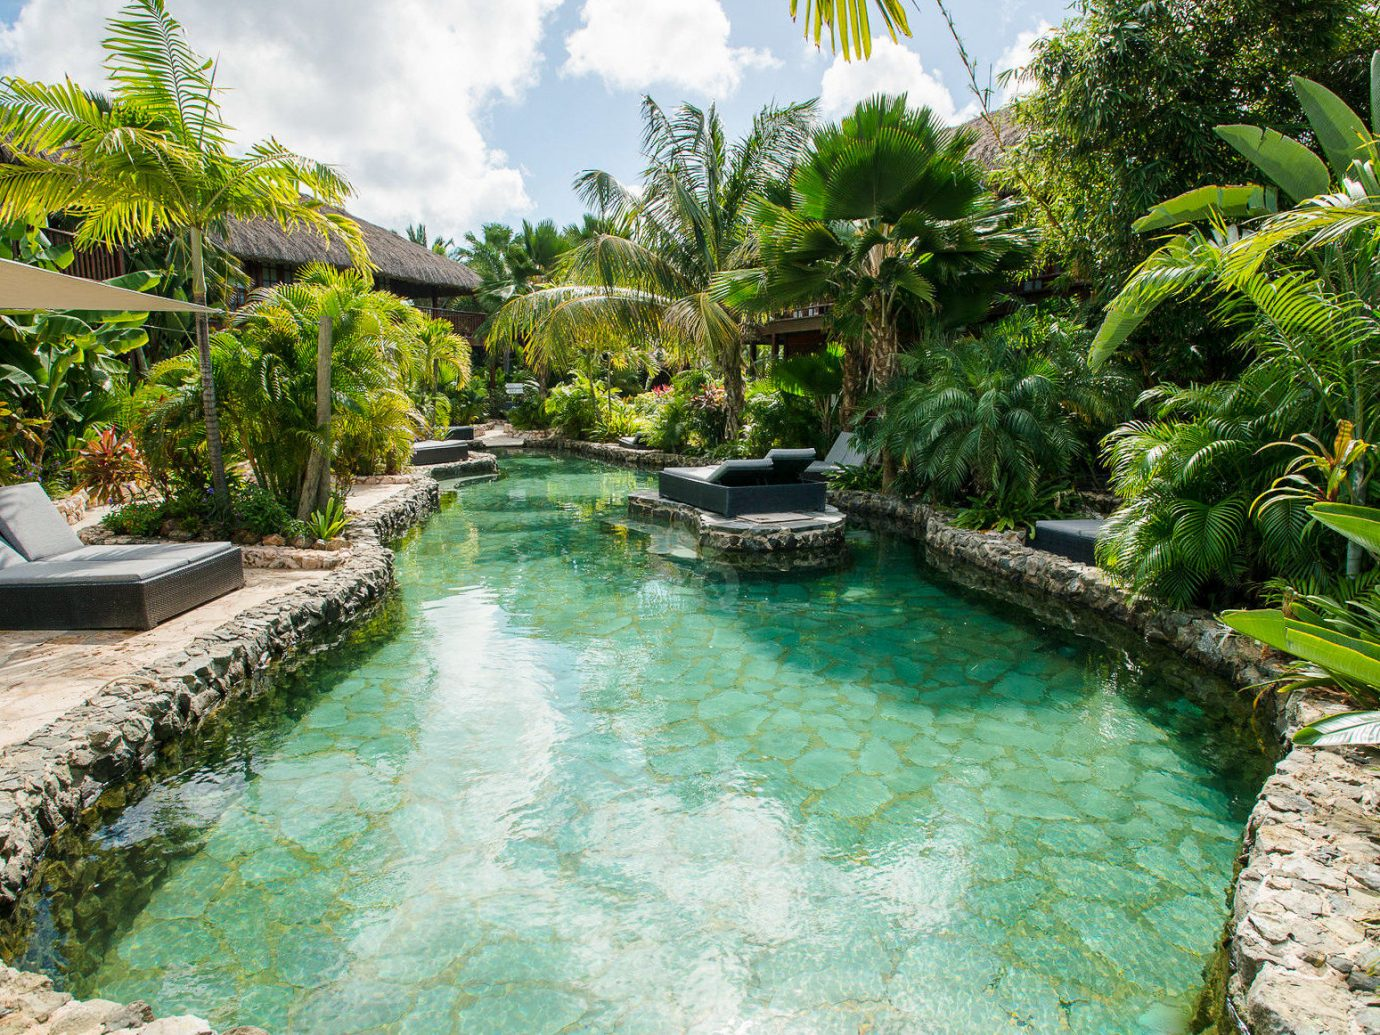 Boutique Hotels Romantic Getaways Romantic Hotels tree outdoor water swimming pool vegetation arecales Resort palm tree tropics Nature leisure plant estate real estate water feature water resources watercourse landscape Lagoon Pool surrounded Garden lined several